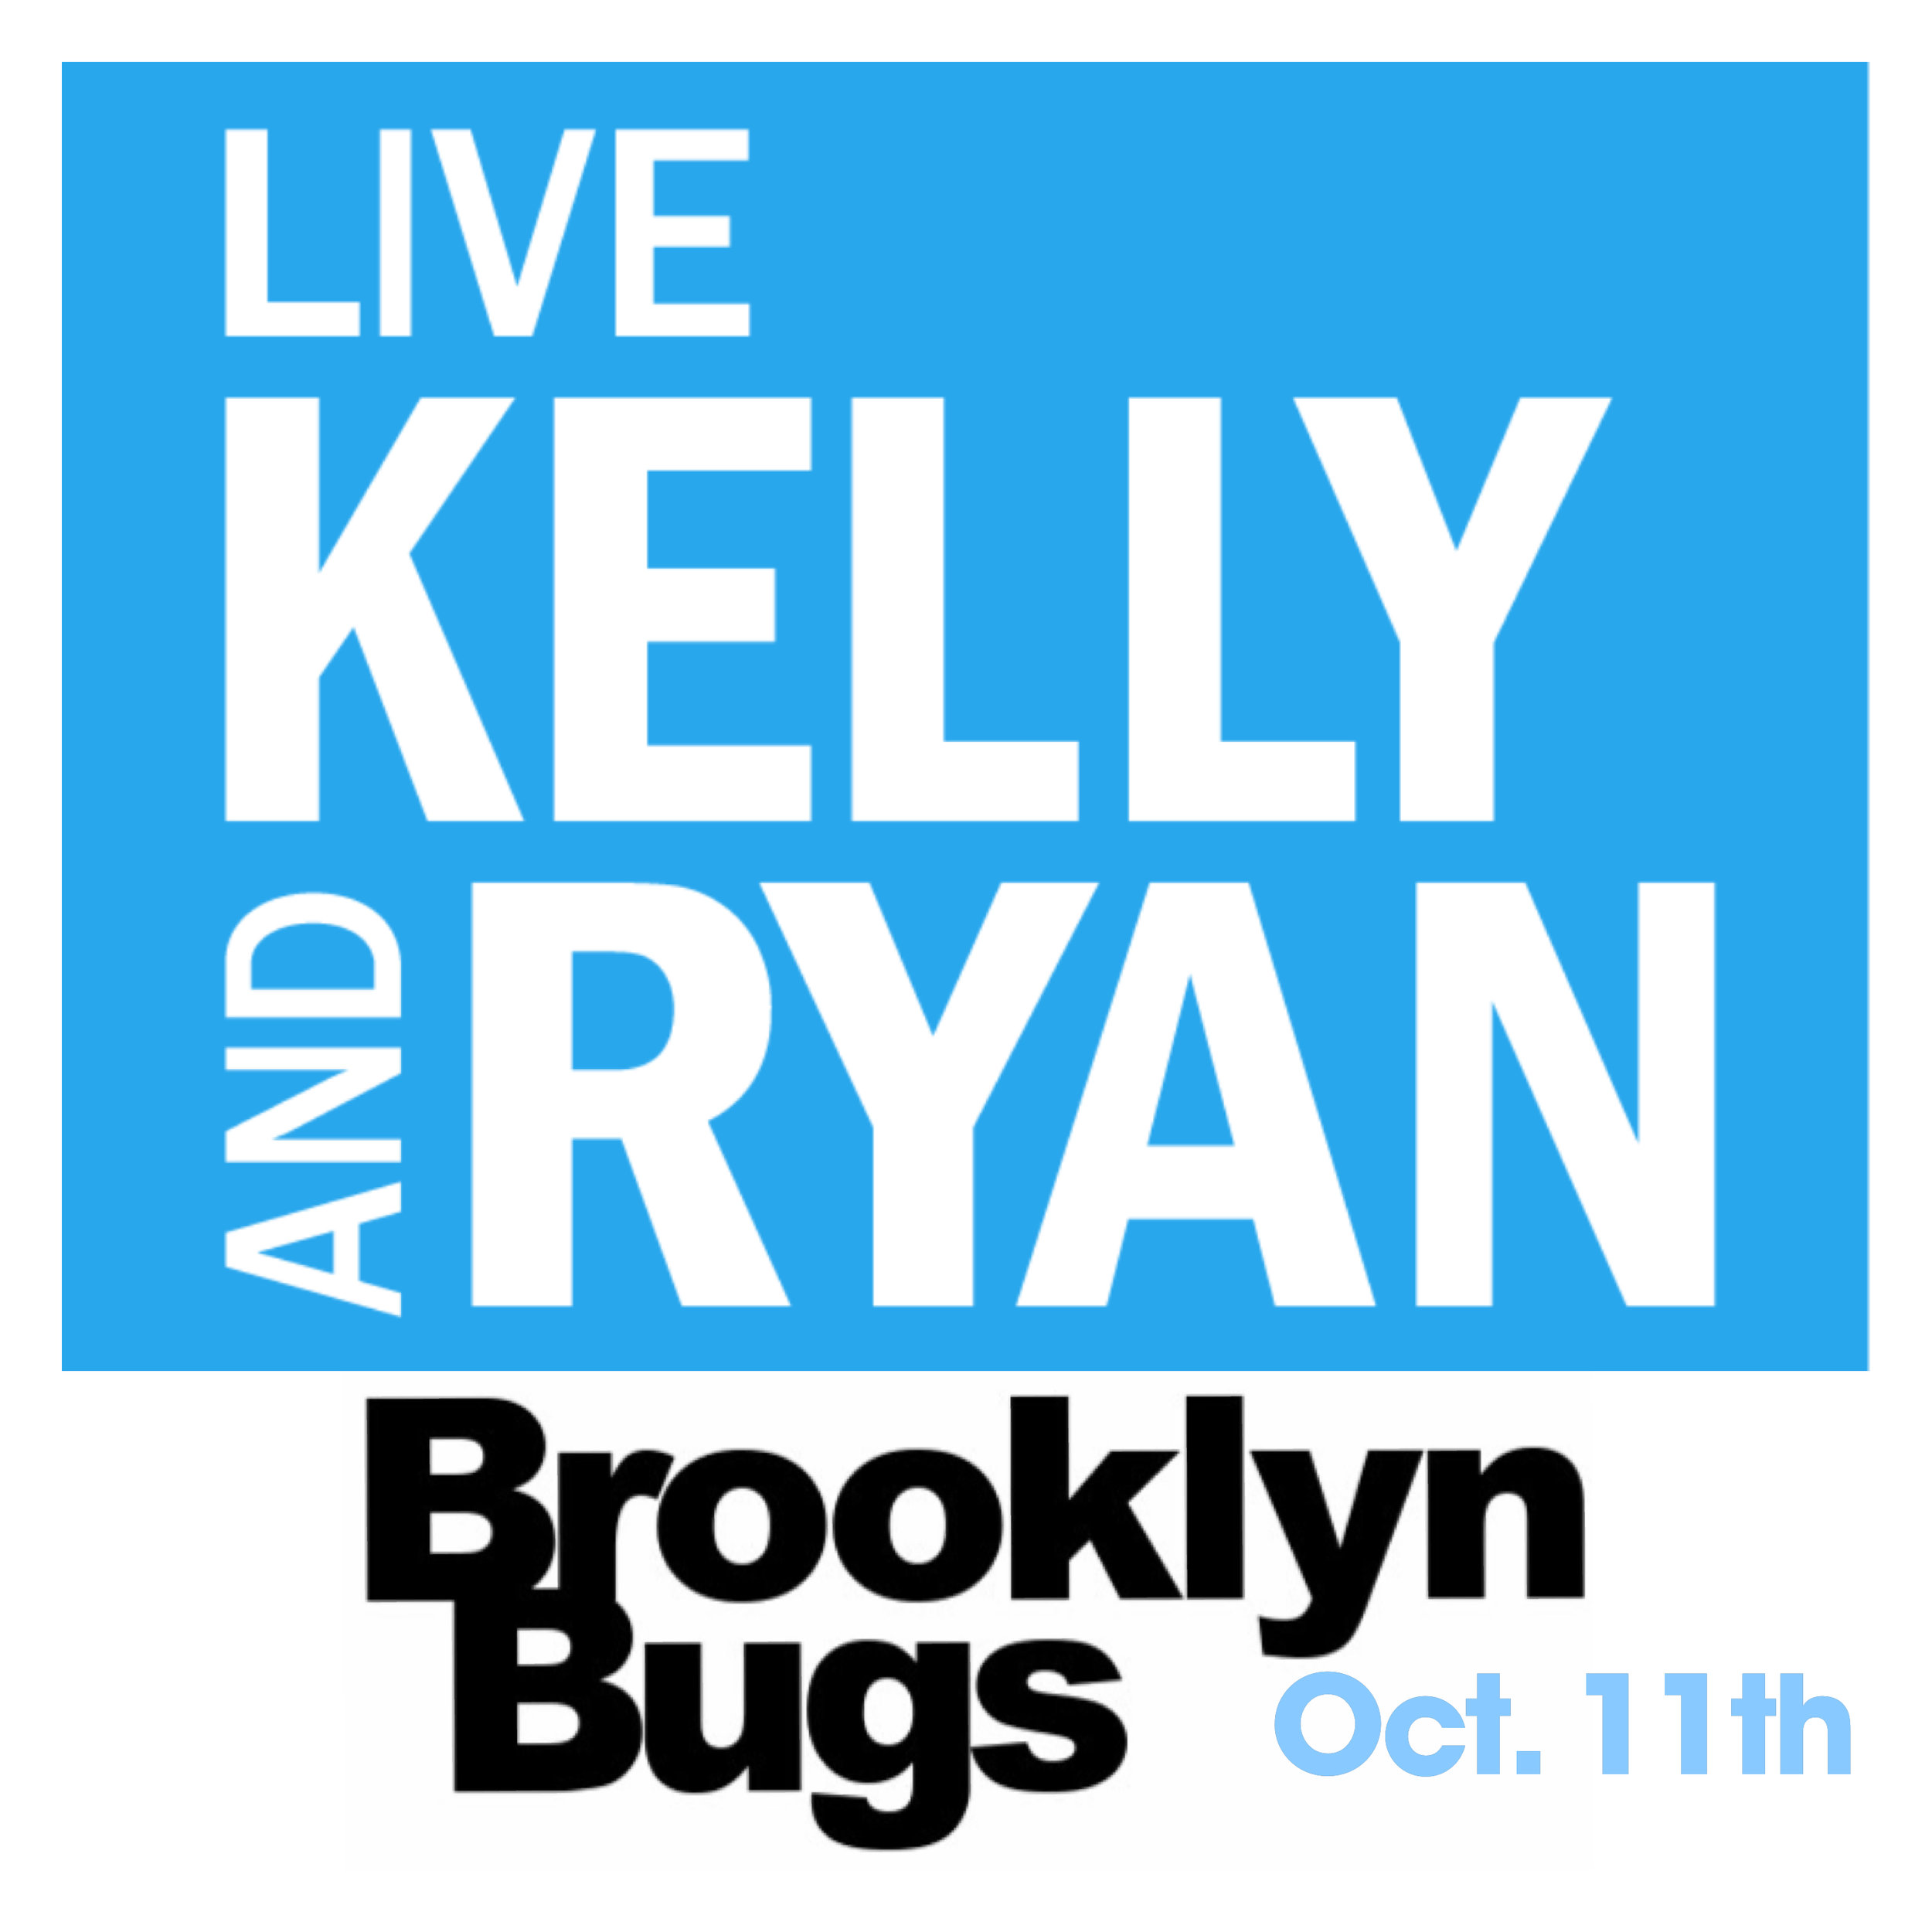 Oct 11th at 9am - We are thrilled to be invited to appear on Live with Kelly and Ryan to promote #bugbites, and our work with the Smithsonian Channel! Appearing on shows like this will help validate #edibleinsects and the work that we are doing to raise appreciation and awareness for edible insects.